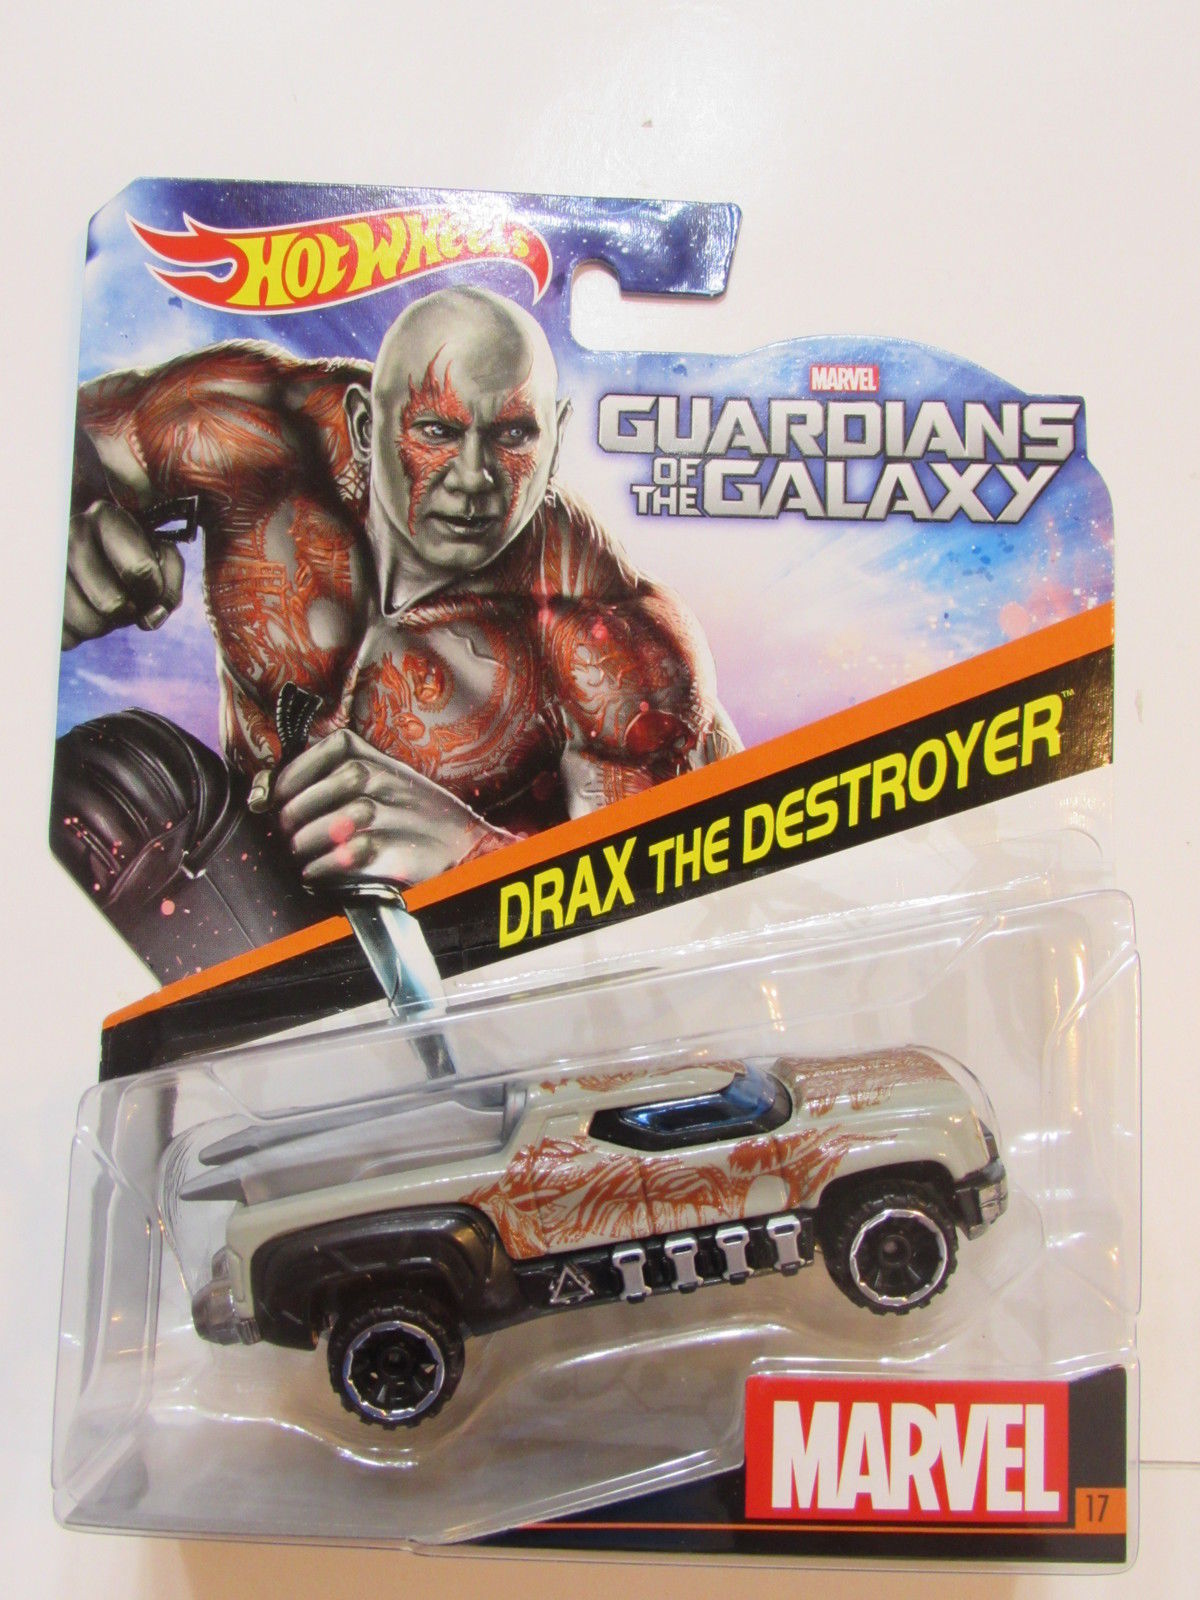 HOT WHEELS MARVEL GUARDIANS OF THE GALAXY BRAX THE DESTROYER E+